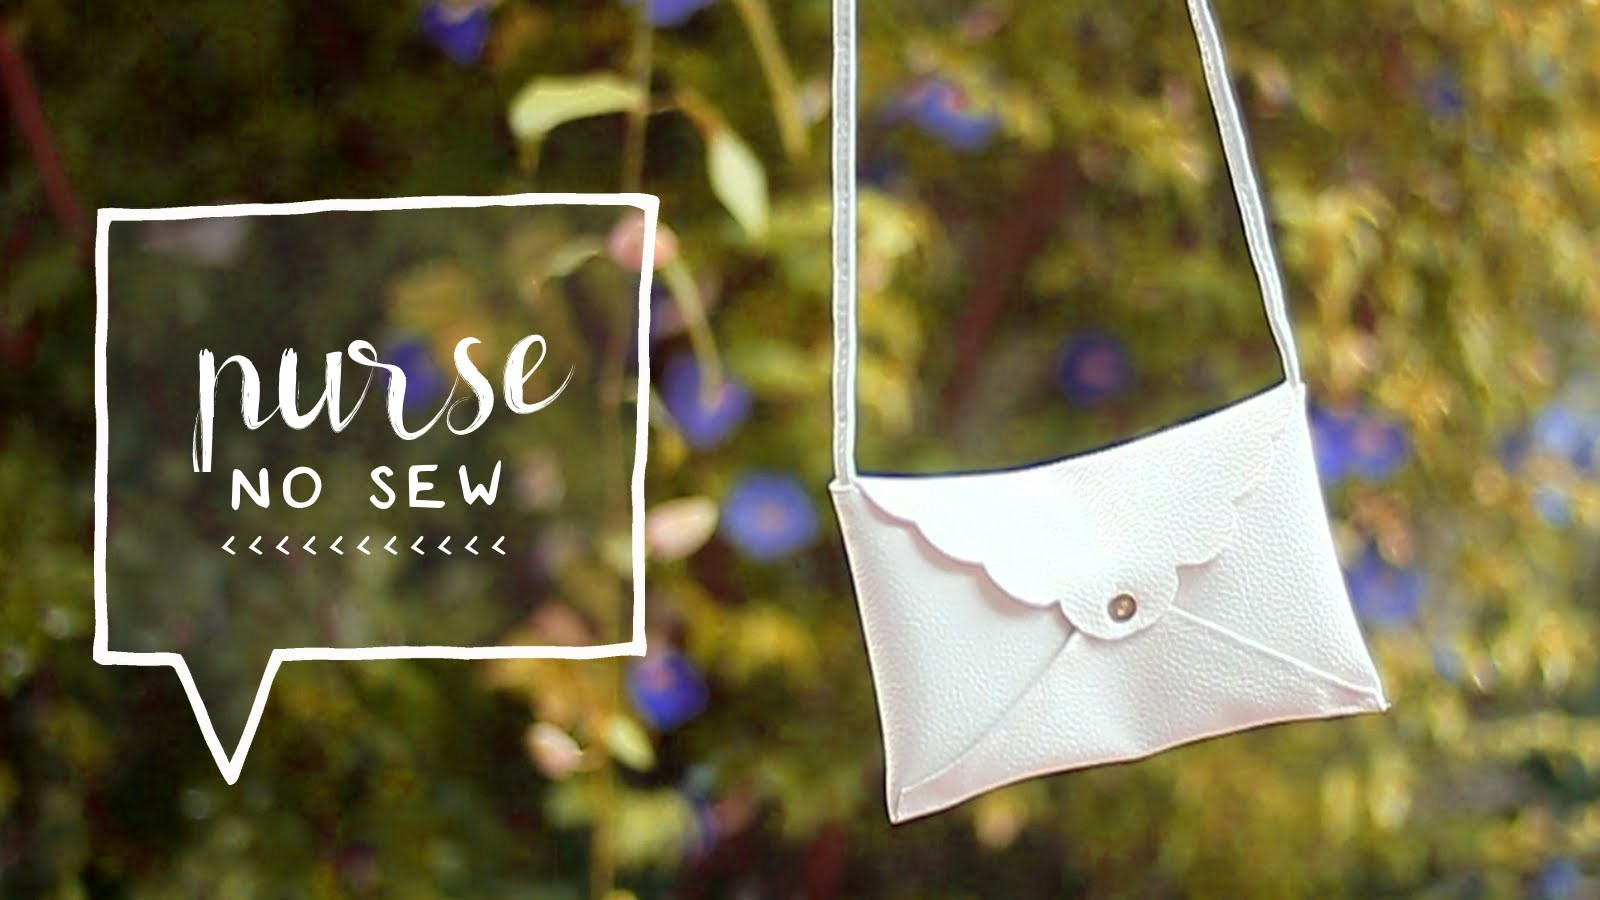 DIY Mini Cross Body Bag | No Sewing (How to Make a DIY Clutch Purse)